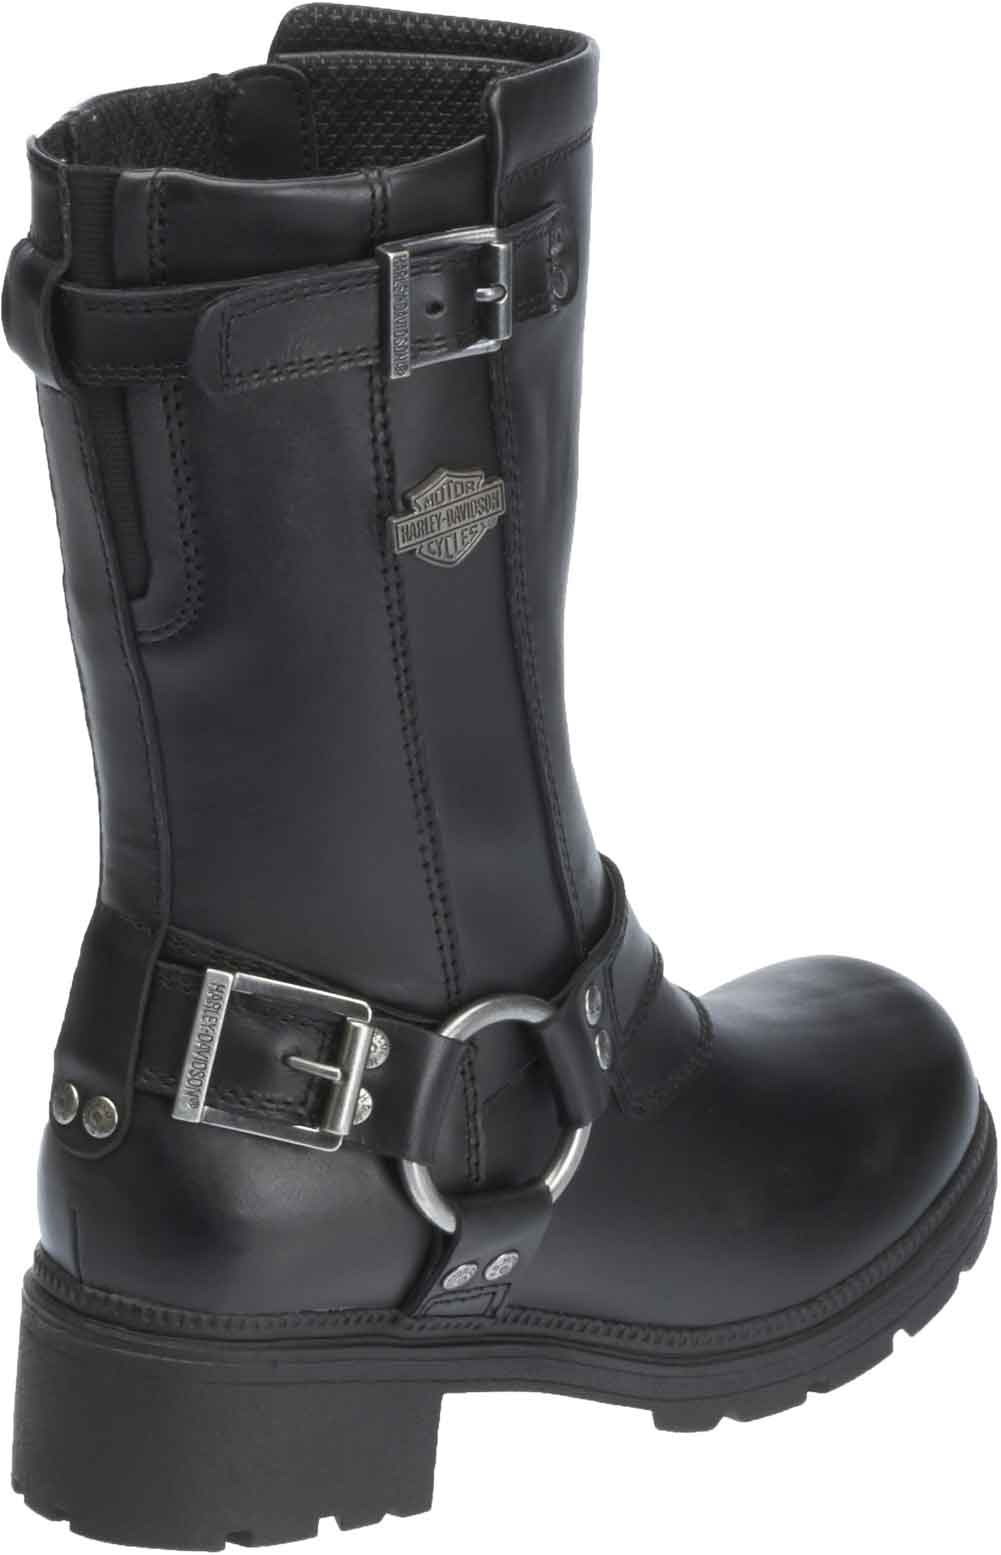 Harley-Davidson Women's Belhaven Knee-Hi Black or Brown Leather ...